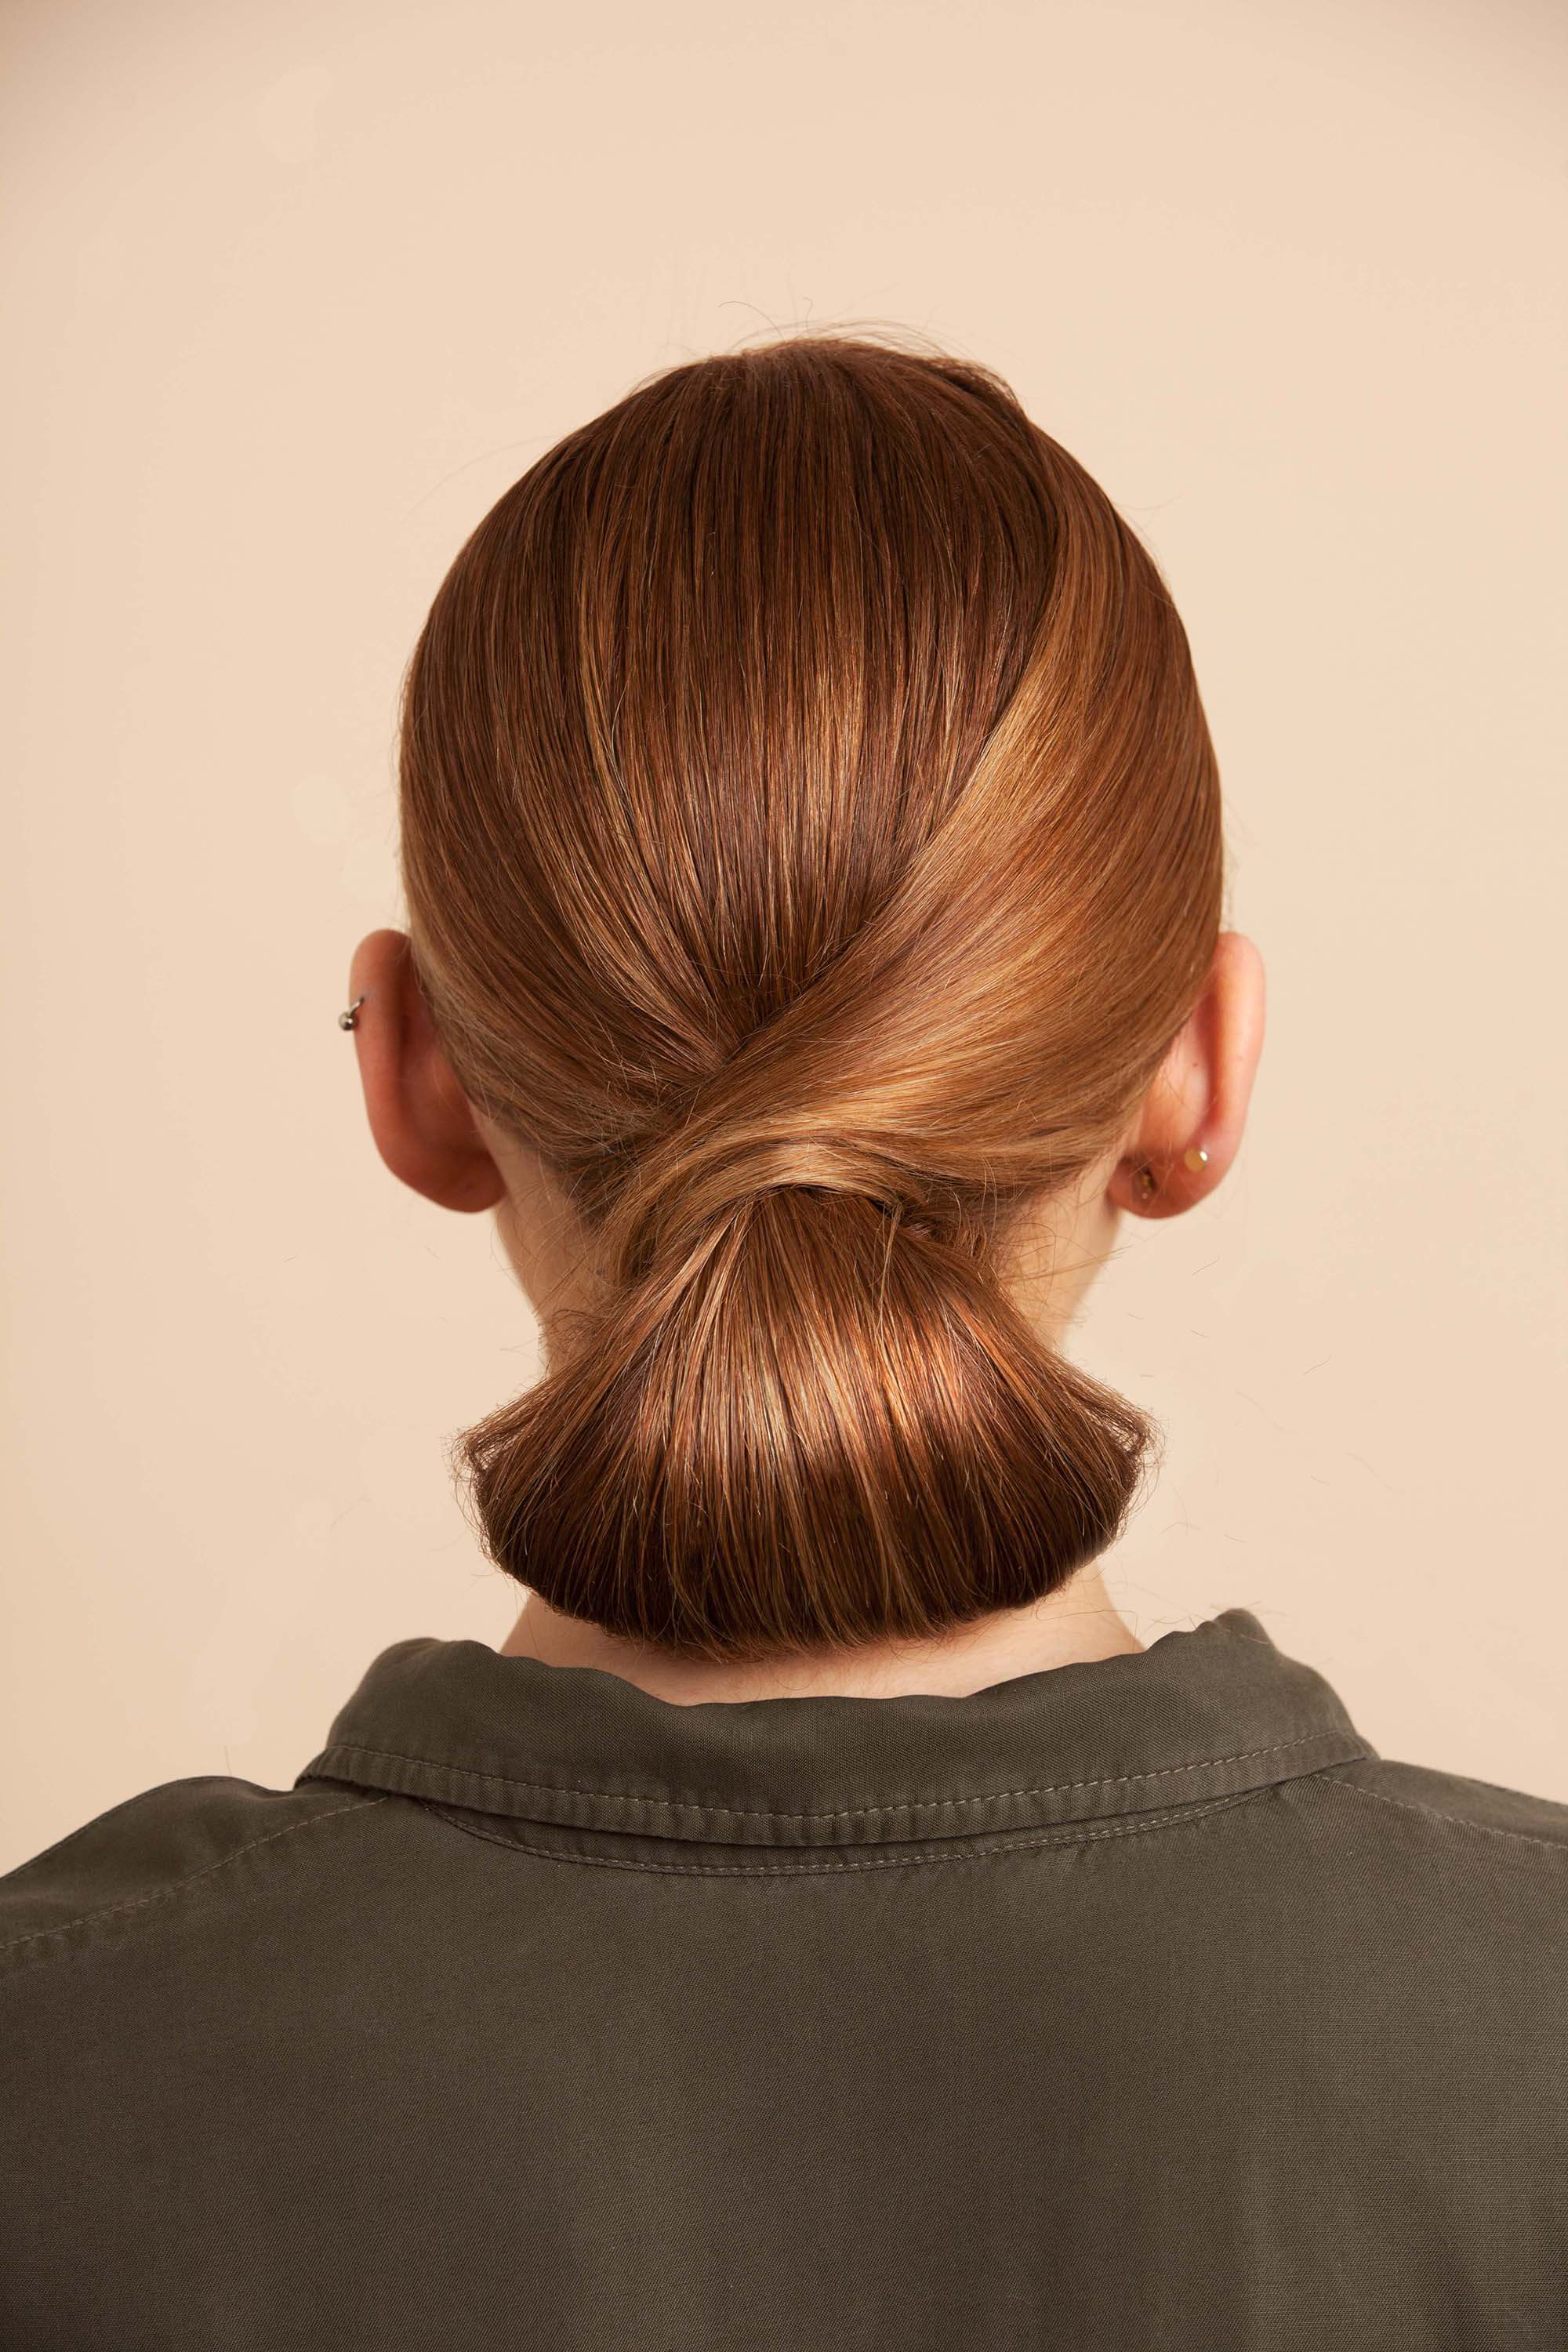 twisted updos are some of our fave new hairstyles for spring